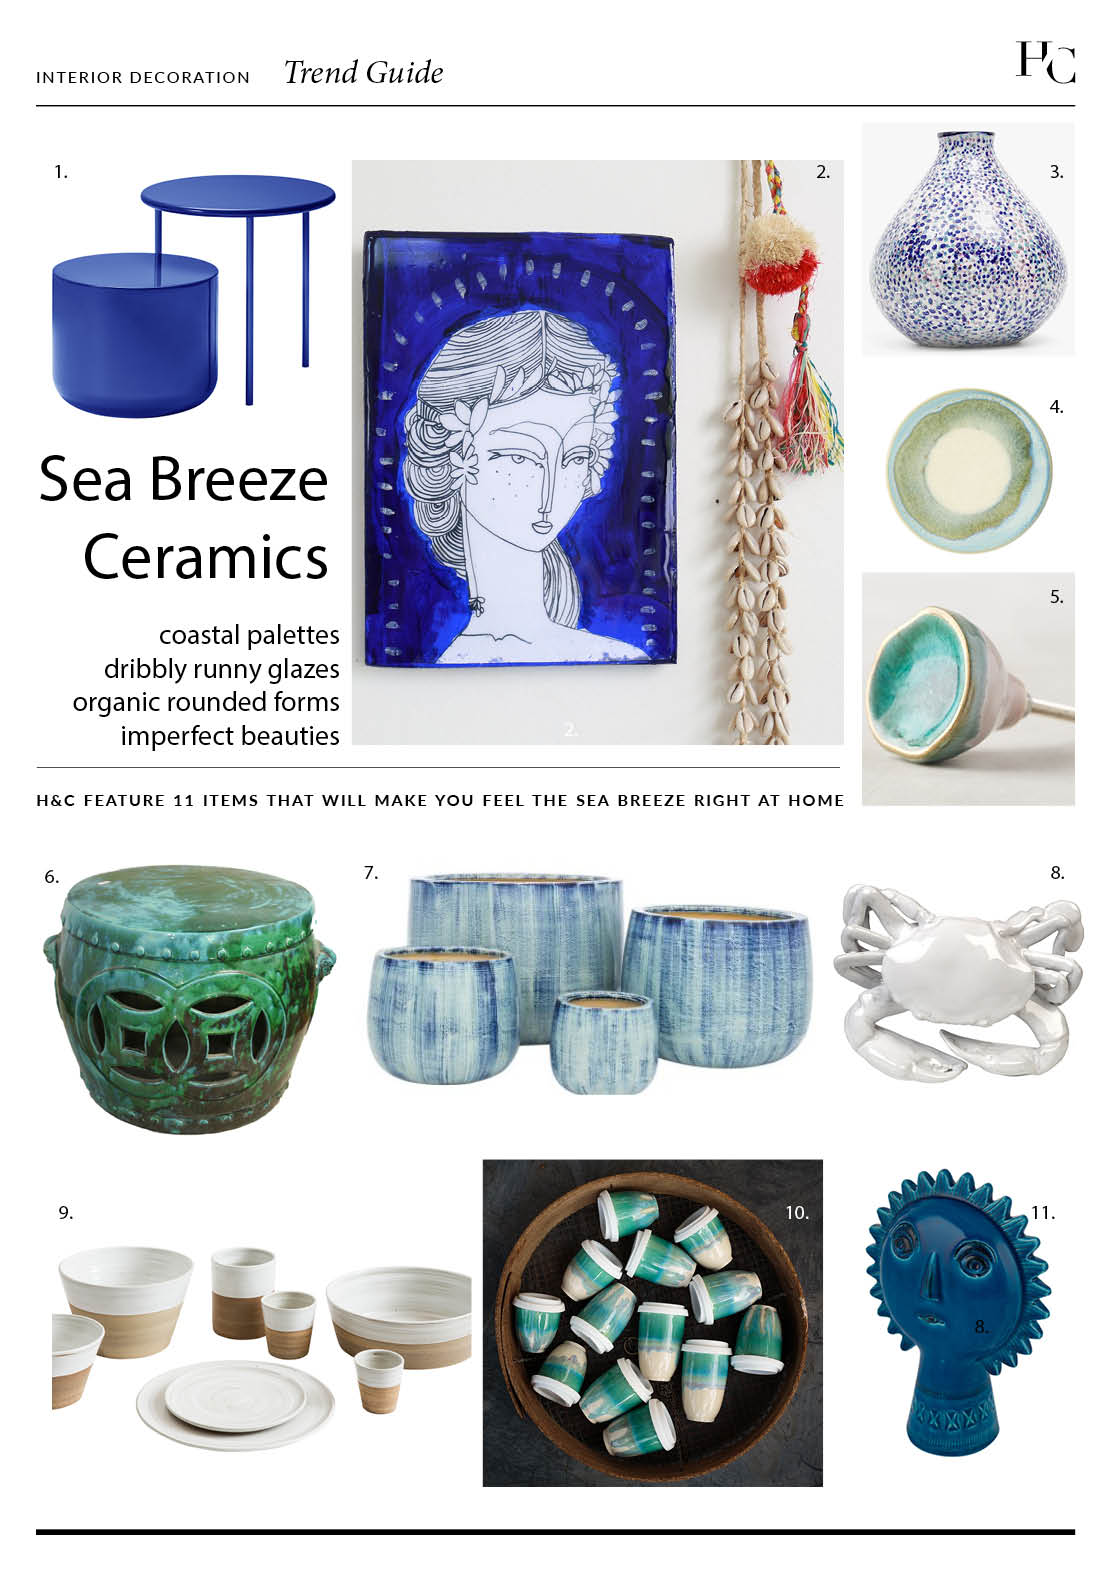 181204 TREND GUIDE SEA BREEZE CERAMICS.jpg